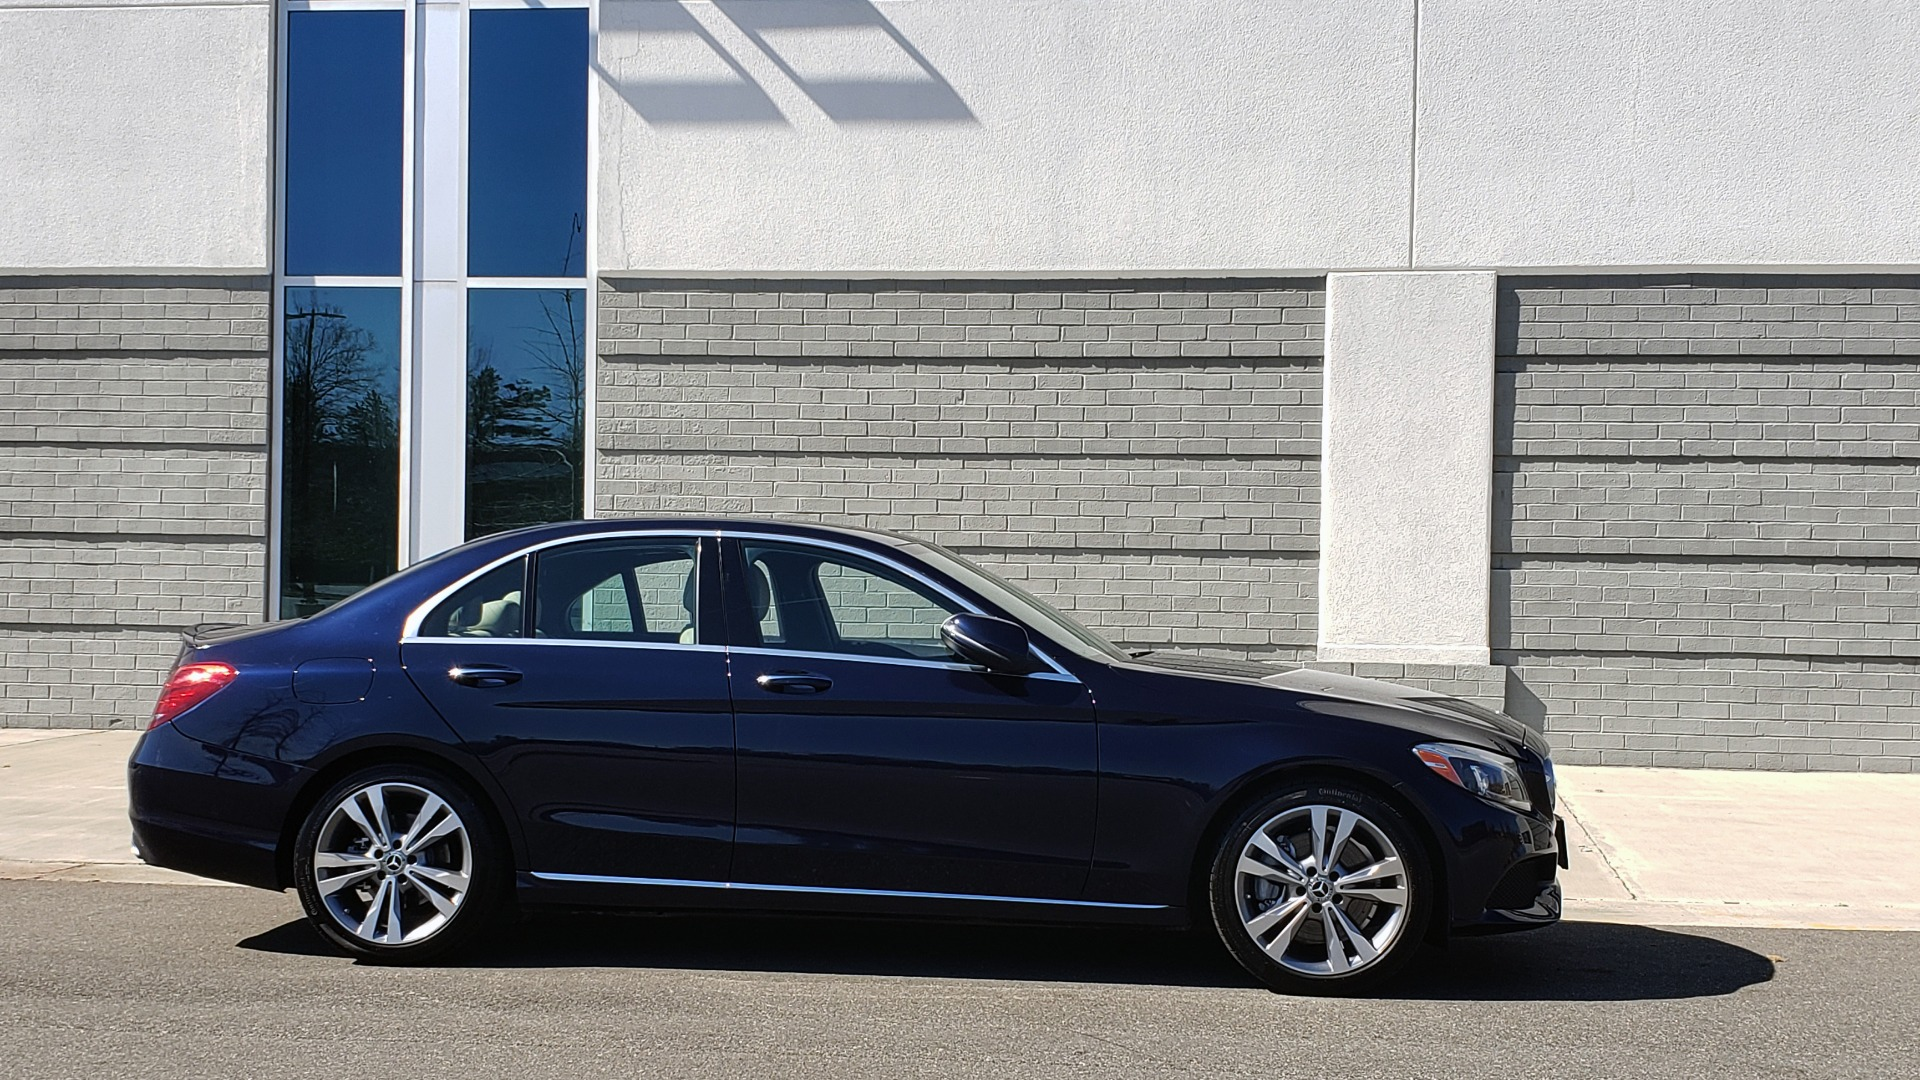 Used 2018 Mercedes-Benz C-CLASS C 300 PREMIUM / SUNROOF / BURMESTER / BSM / REARVIEW for sale $23,995 at Formula Imports in Charlotte NC 28227 6